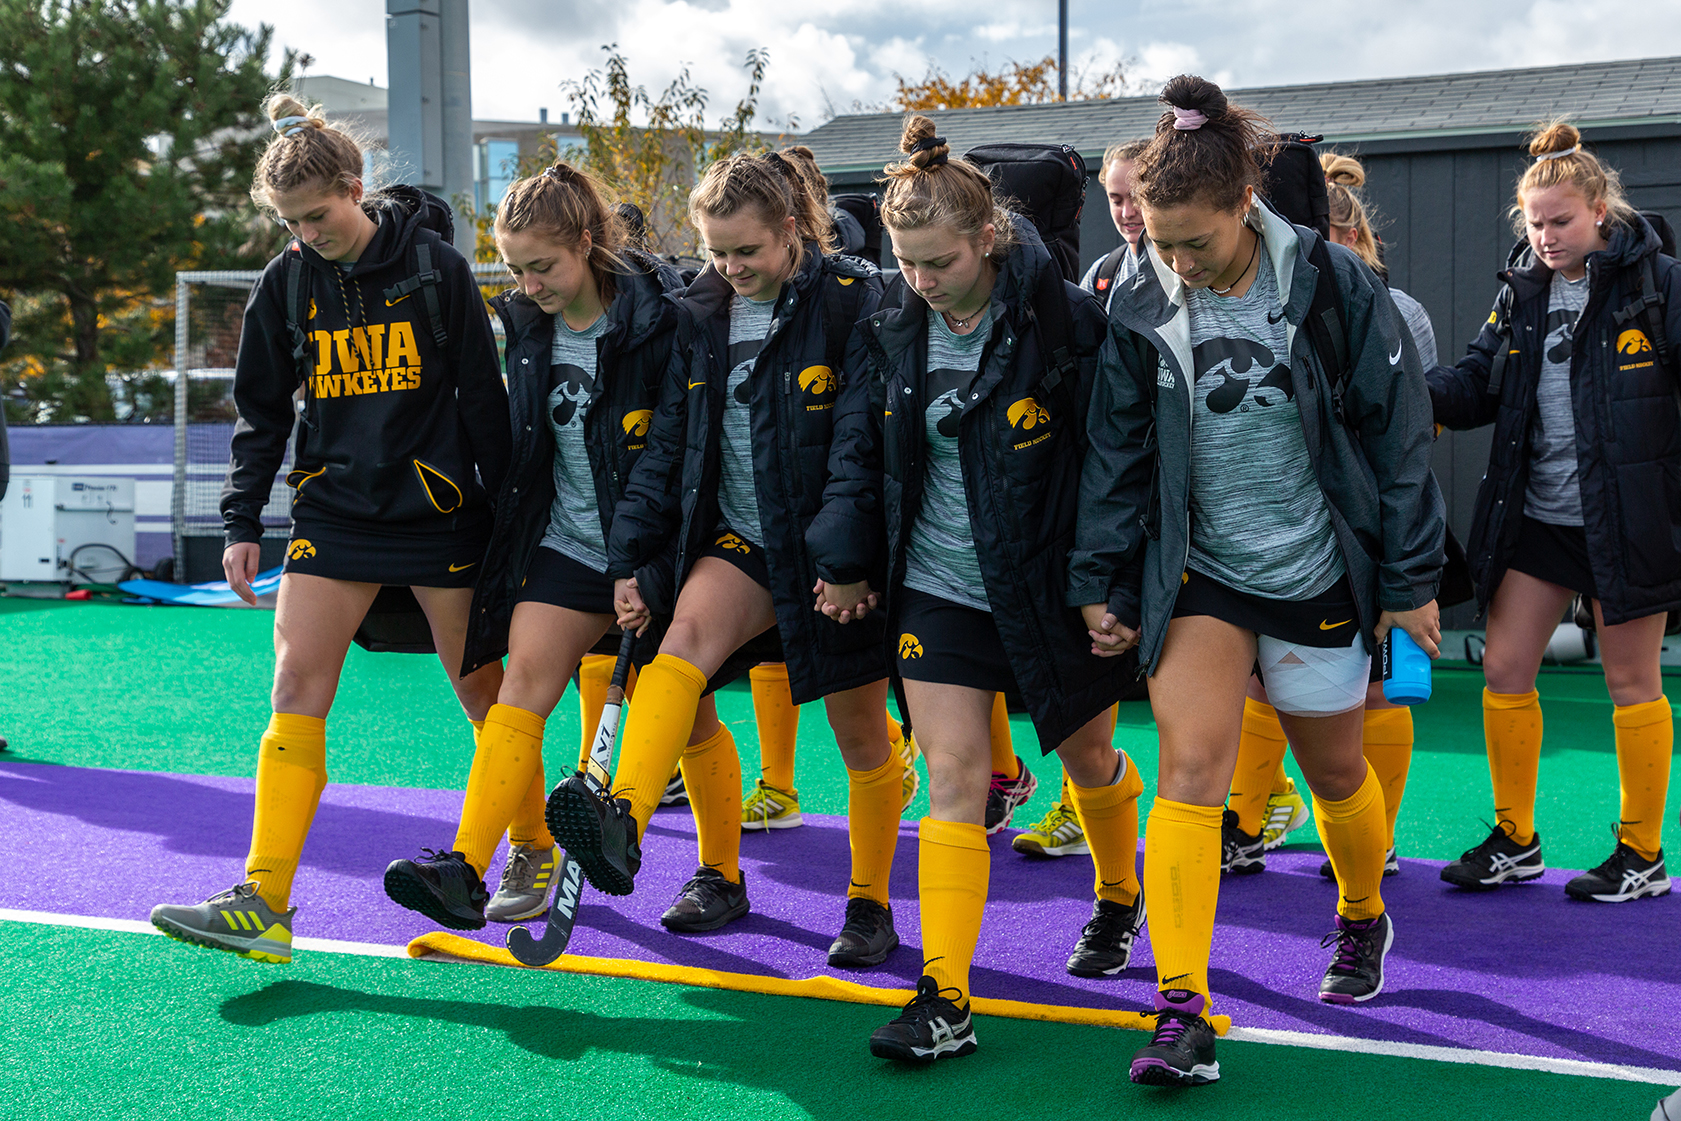 The Iowa Field Hockey Team steps over a golden stripe before the Semifinals in the Big Ten Field Hockey Tournament at Lakeside Field in Evanston, IL on Friday, Nov. 2, 2018. The no. 8 ranked Hawkeyes defeated the no. 7 ranked Wolverines 2-1. The stripe is a piece of Grant Field in Iowa City and is part of a pre-game routine to help the players focus.